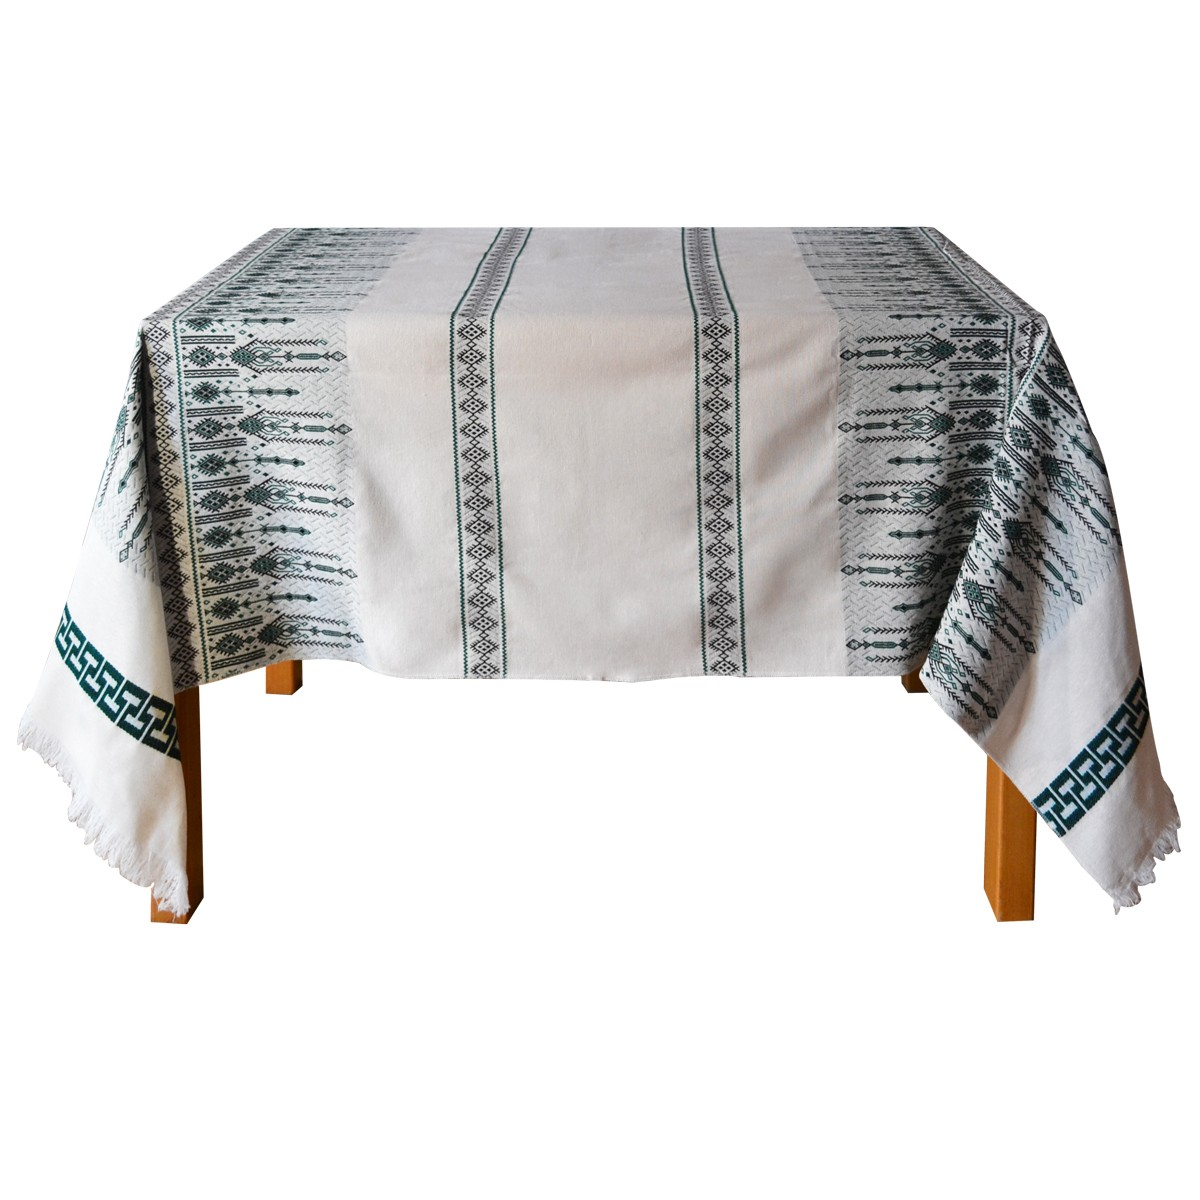 Candlestick Jacquard Tablecloth, Green